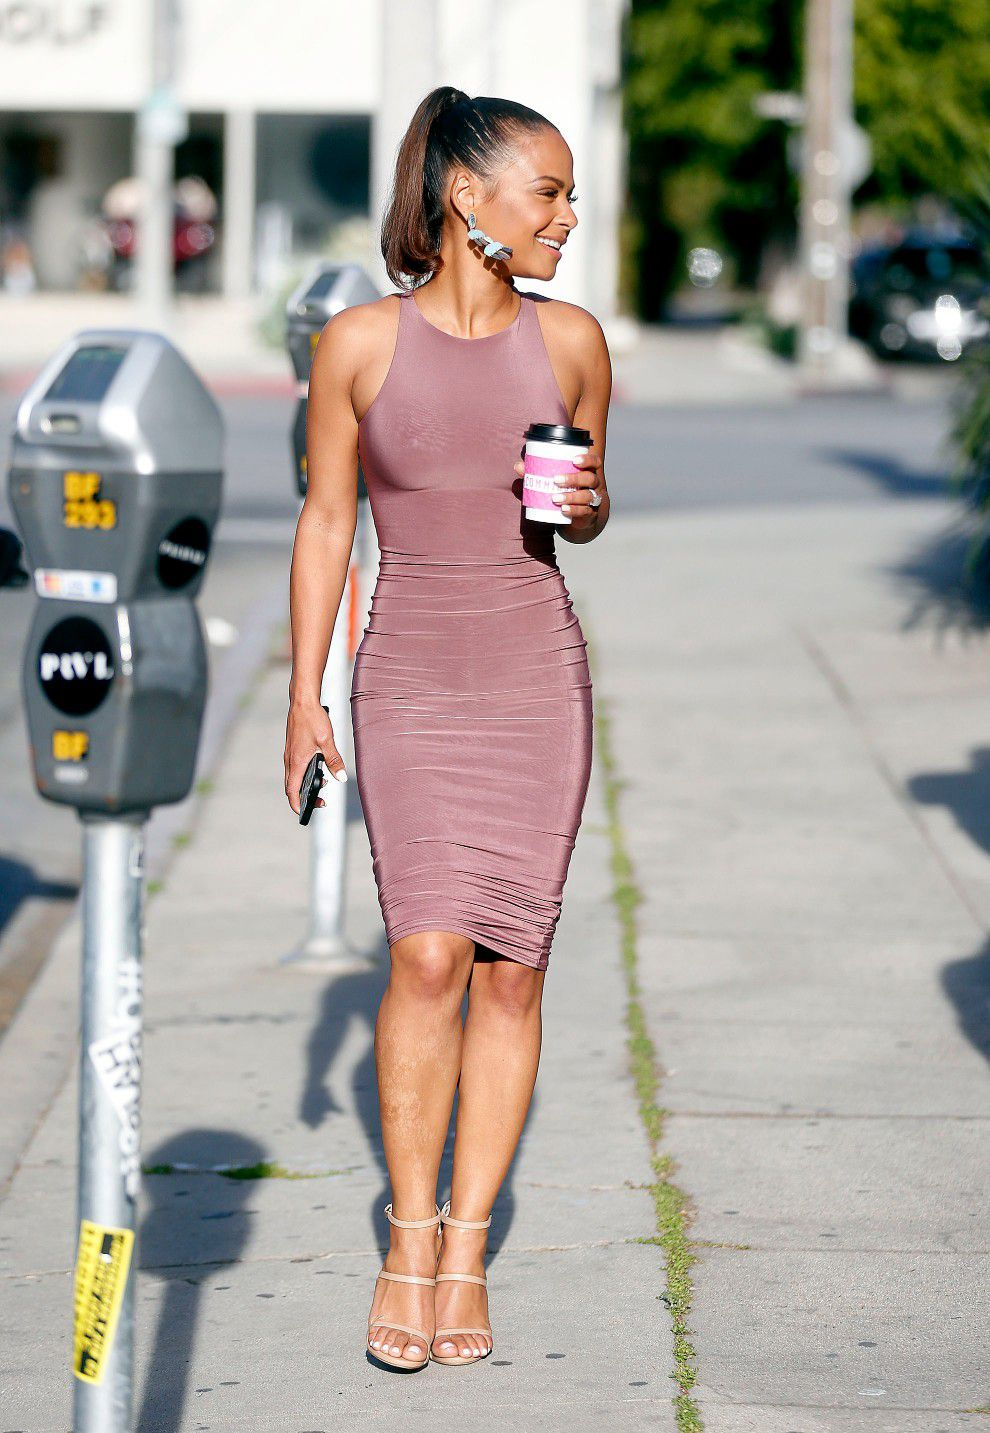 christina-milian-pokies-in-tight-dress-while-out-in-west-hollywood-3092